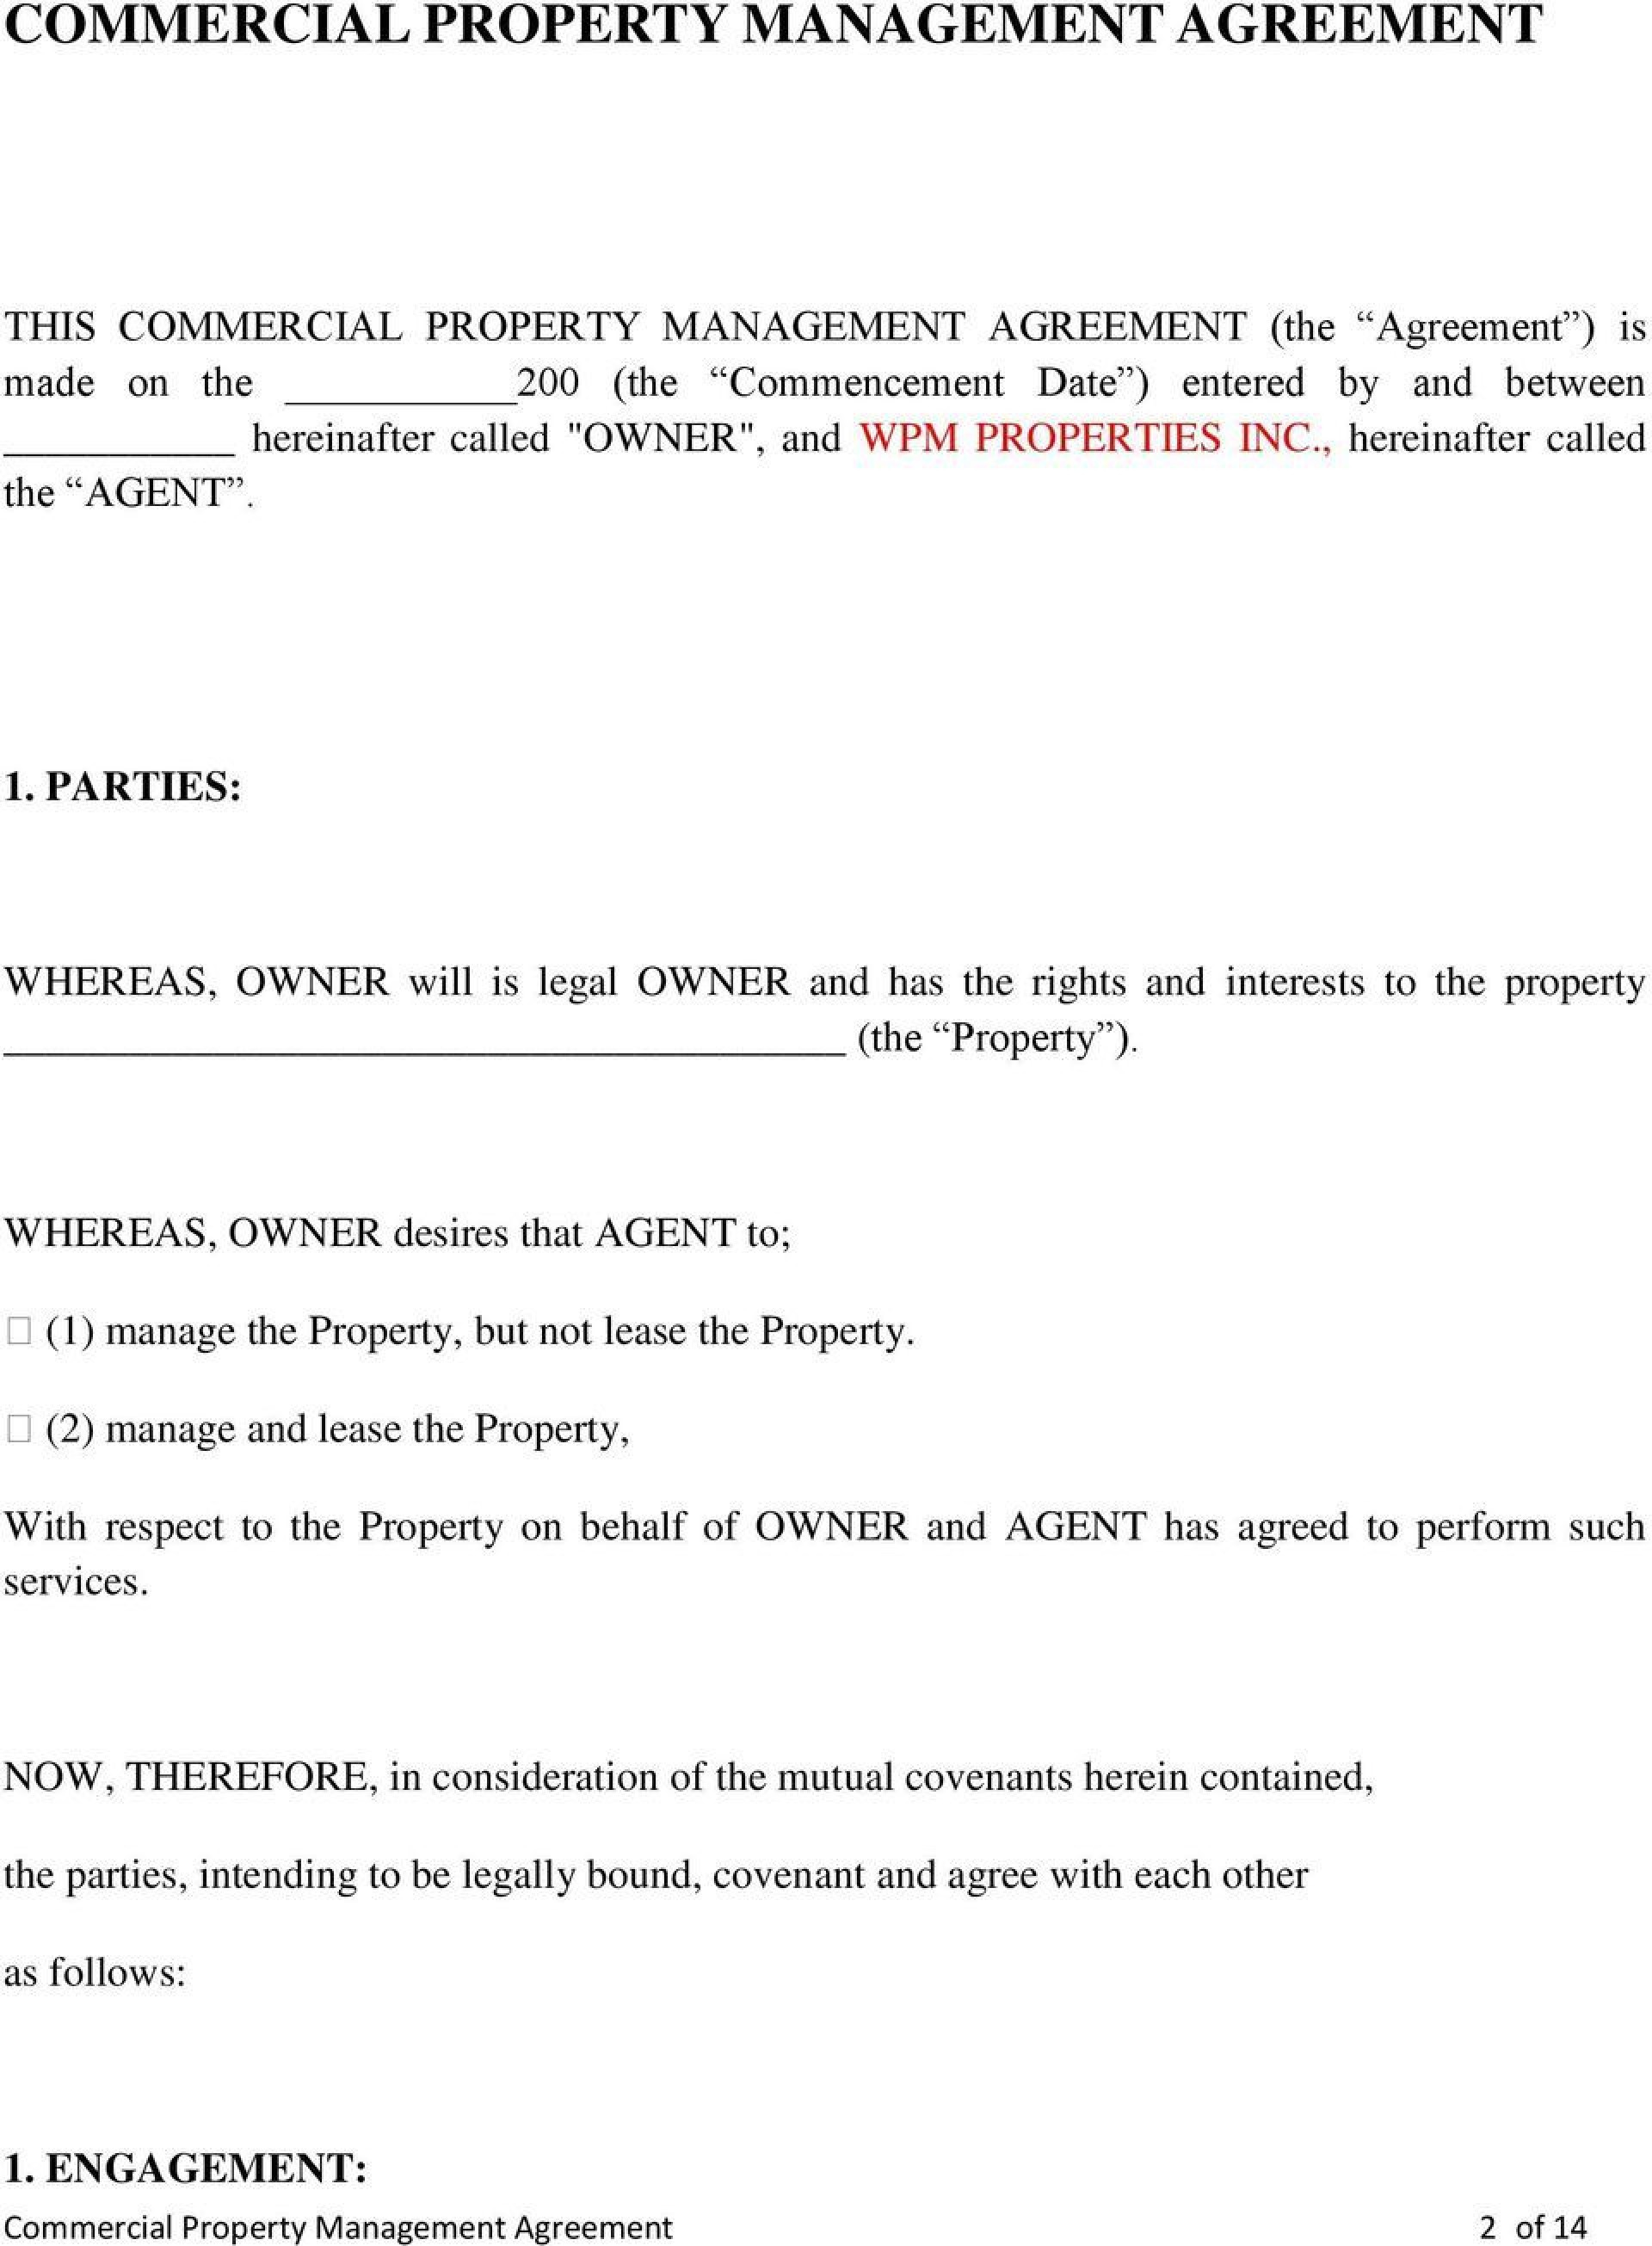 003 Impressive Property Management Contract Sample Highest Quality  Philippine Agreement Template Pdf Commercial1920